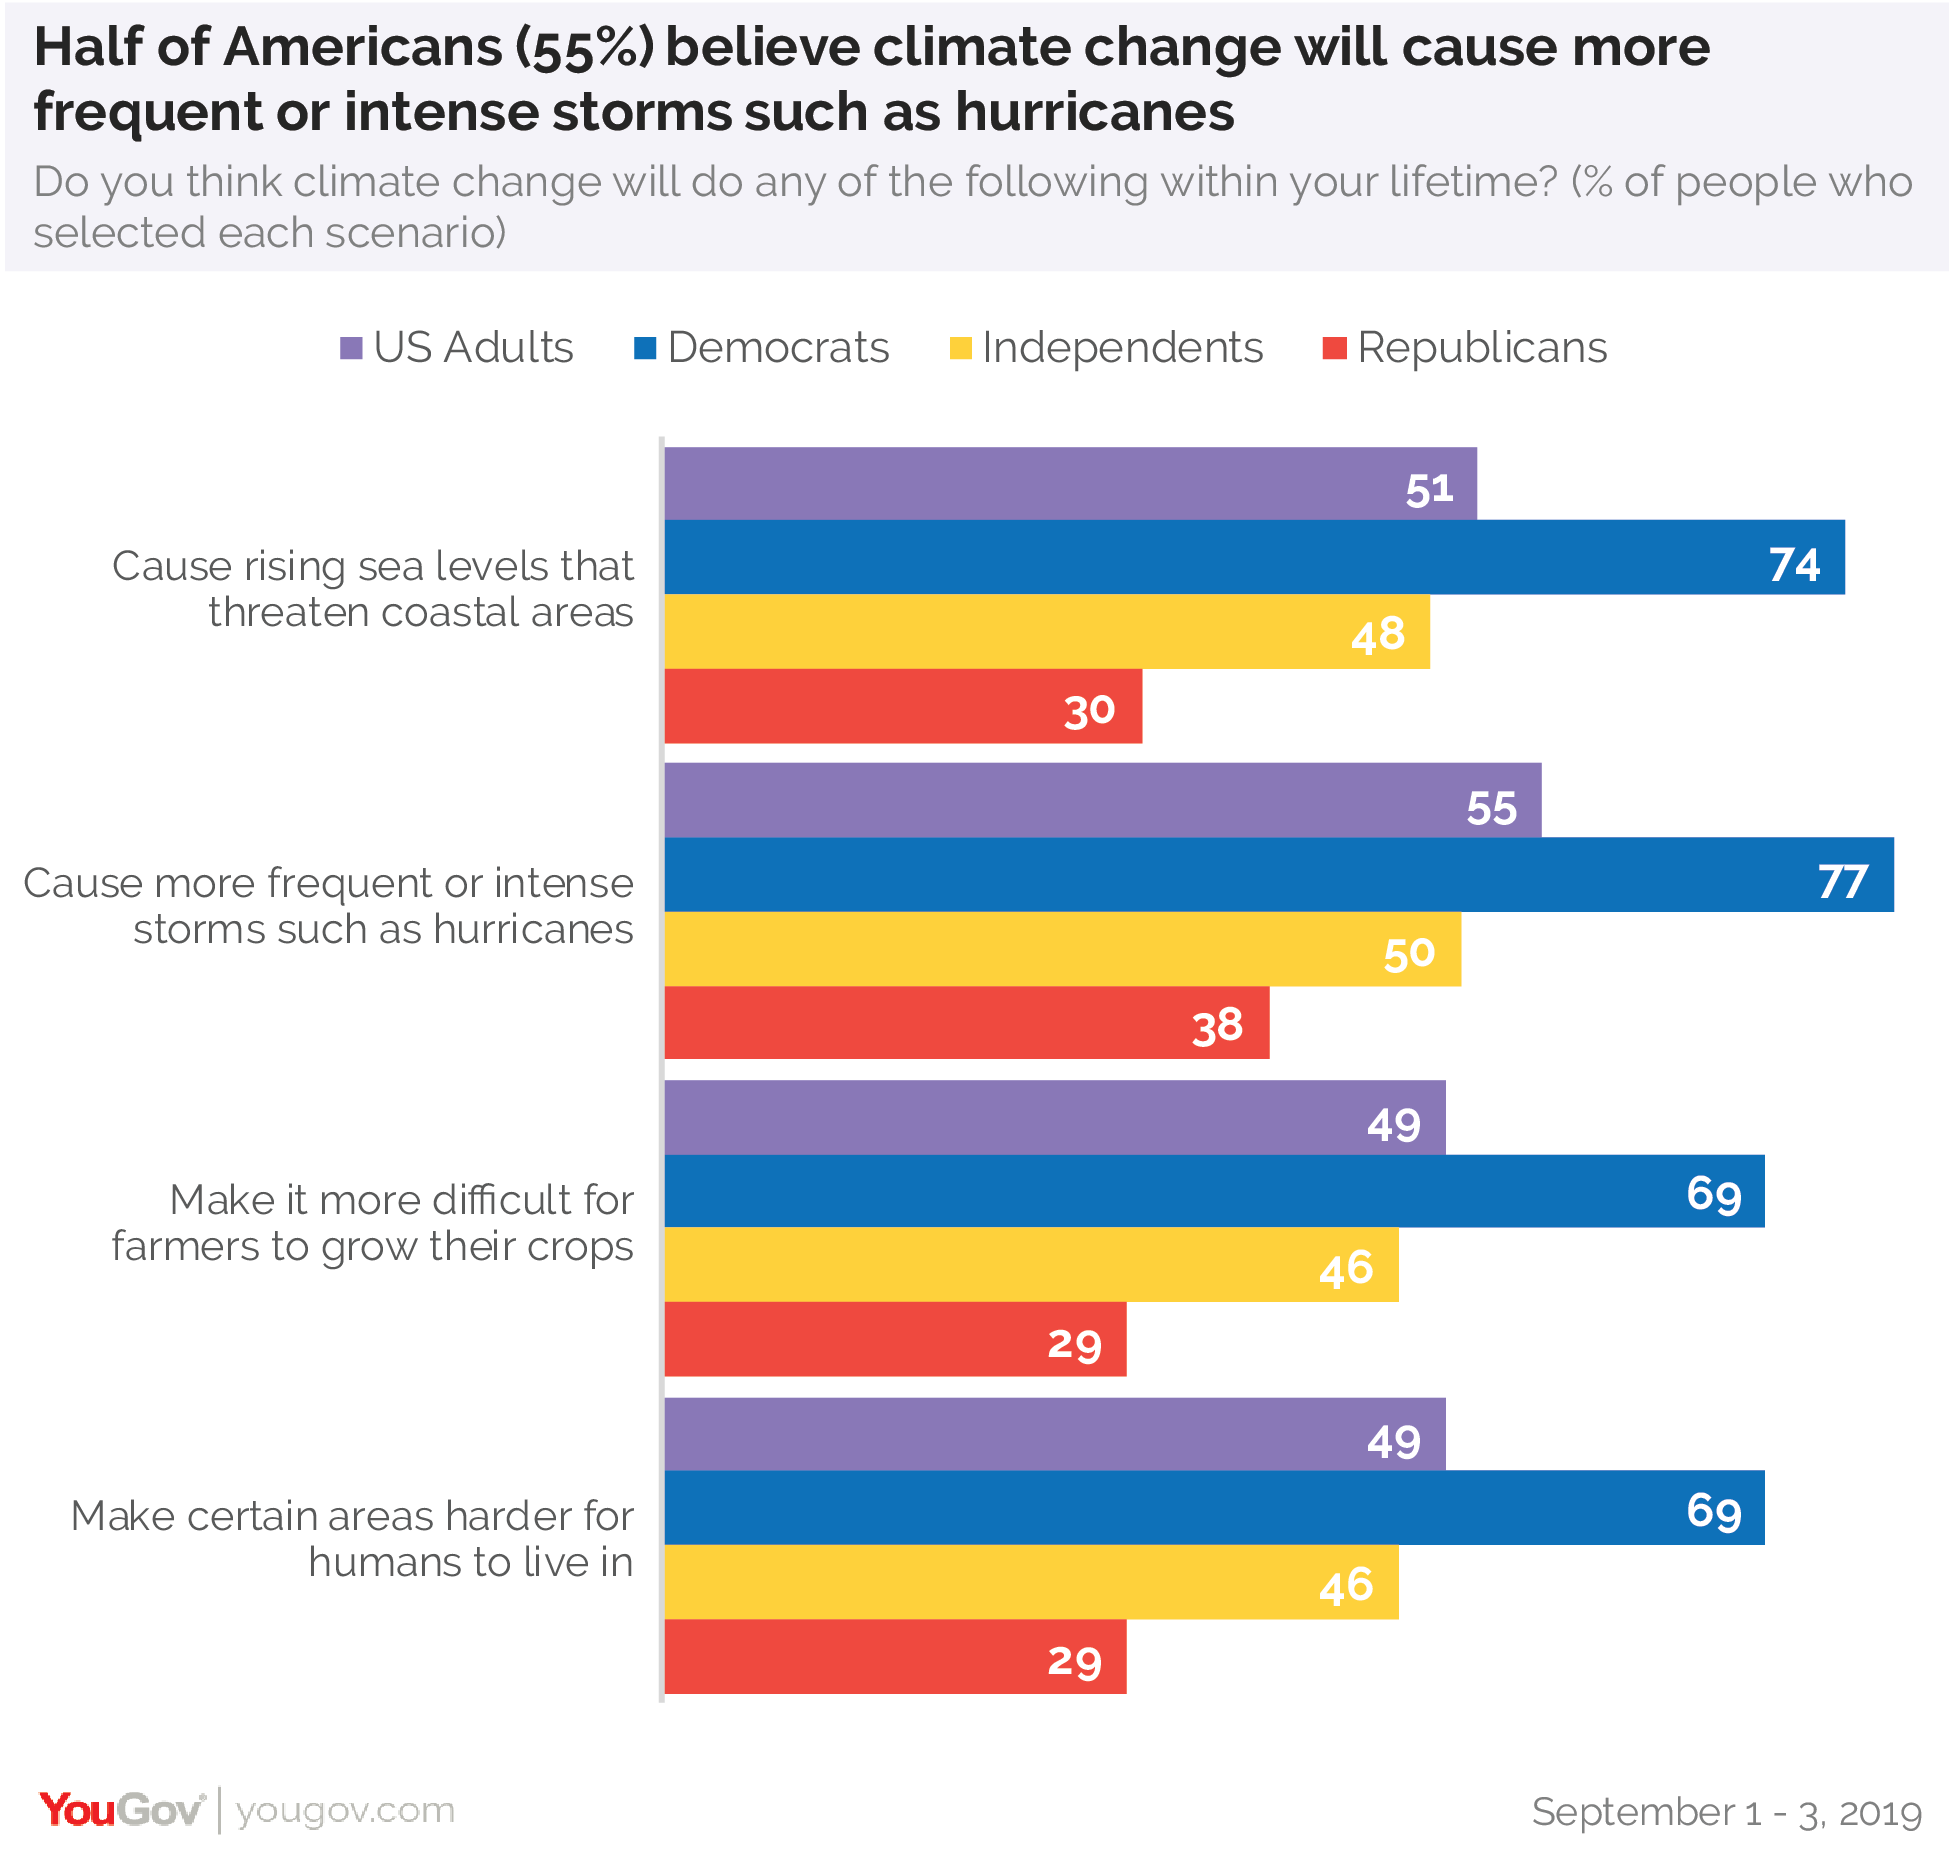 Half of Americans believe climate change will cause more frequent or intense storms such as hurricanes